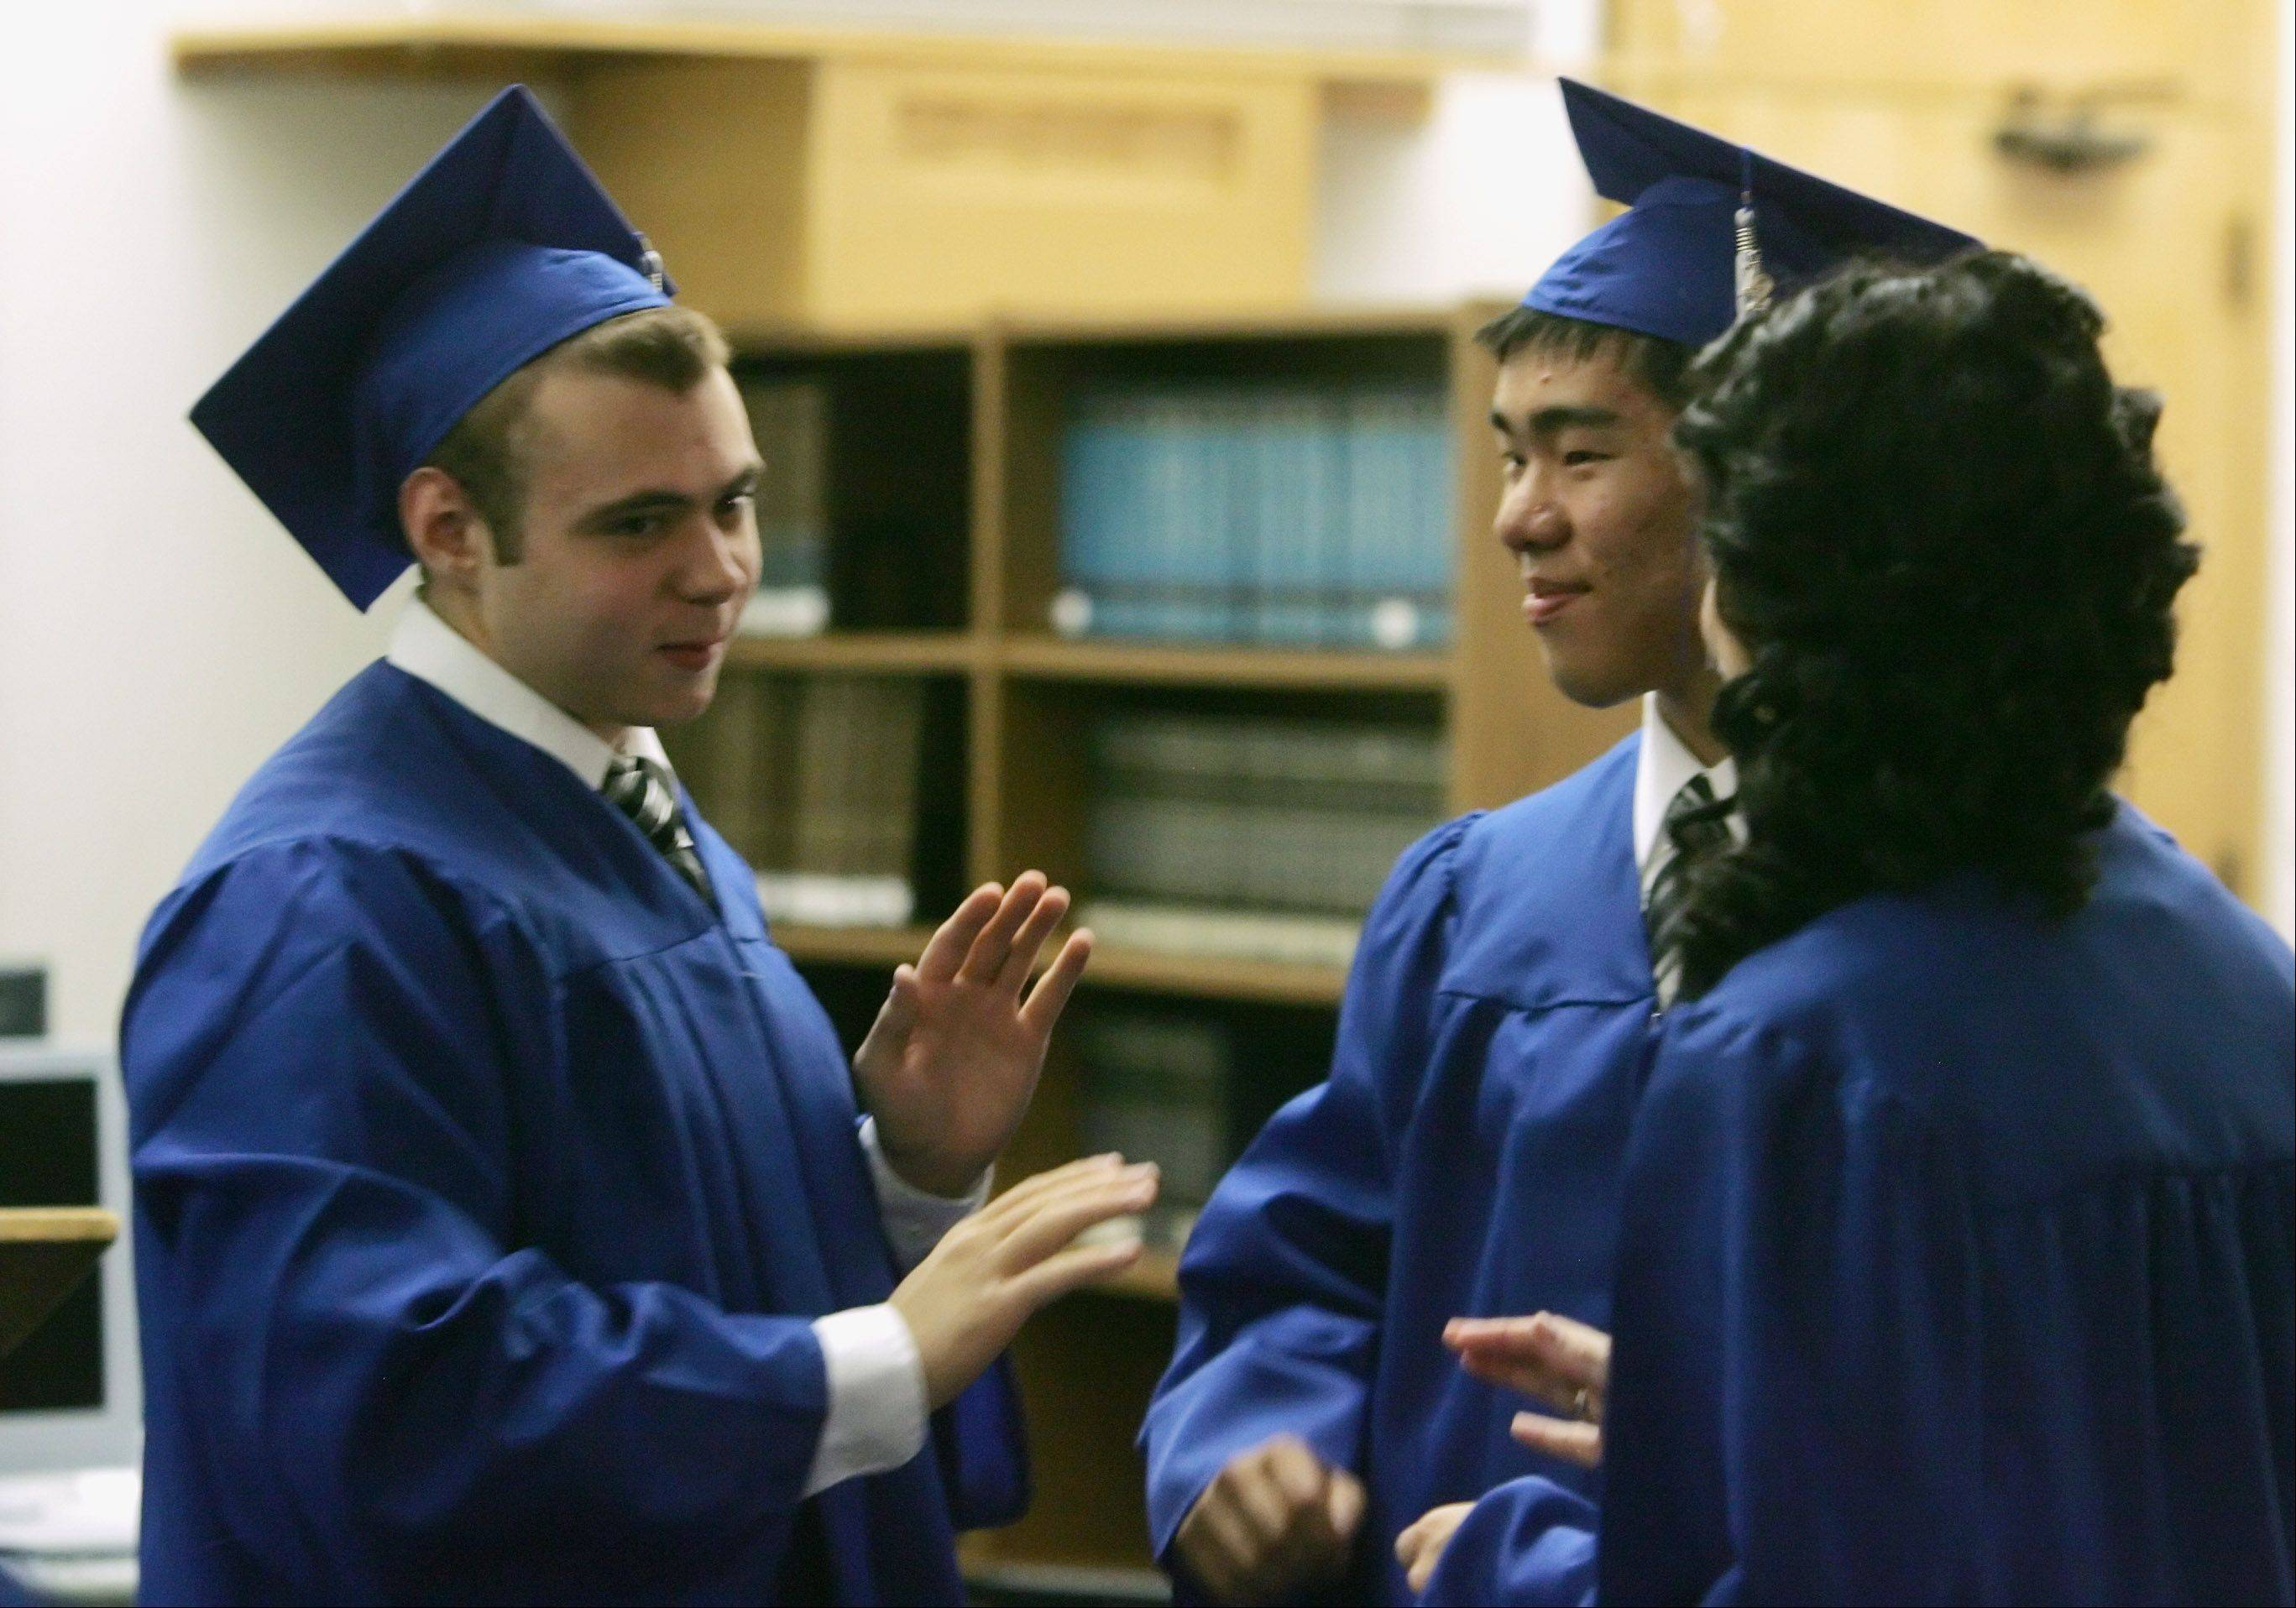 Images from the Christian Liberty Academy graduation on Sunday, June 10th, at the school in Arlington Heights.